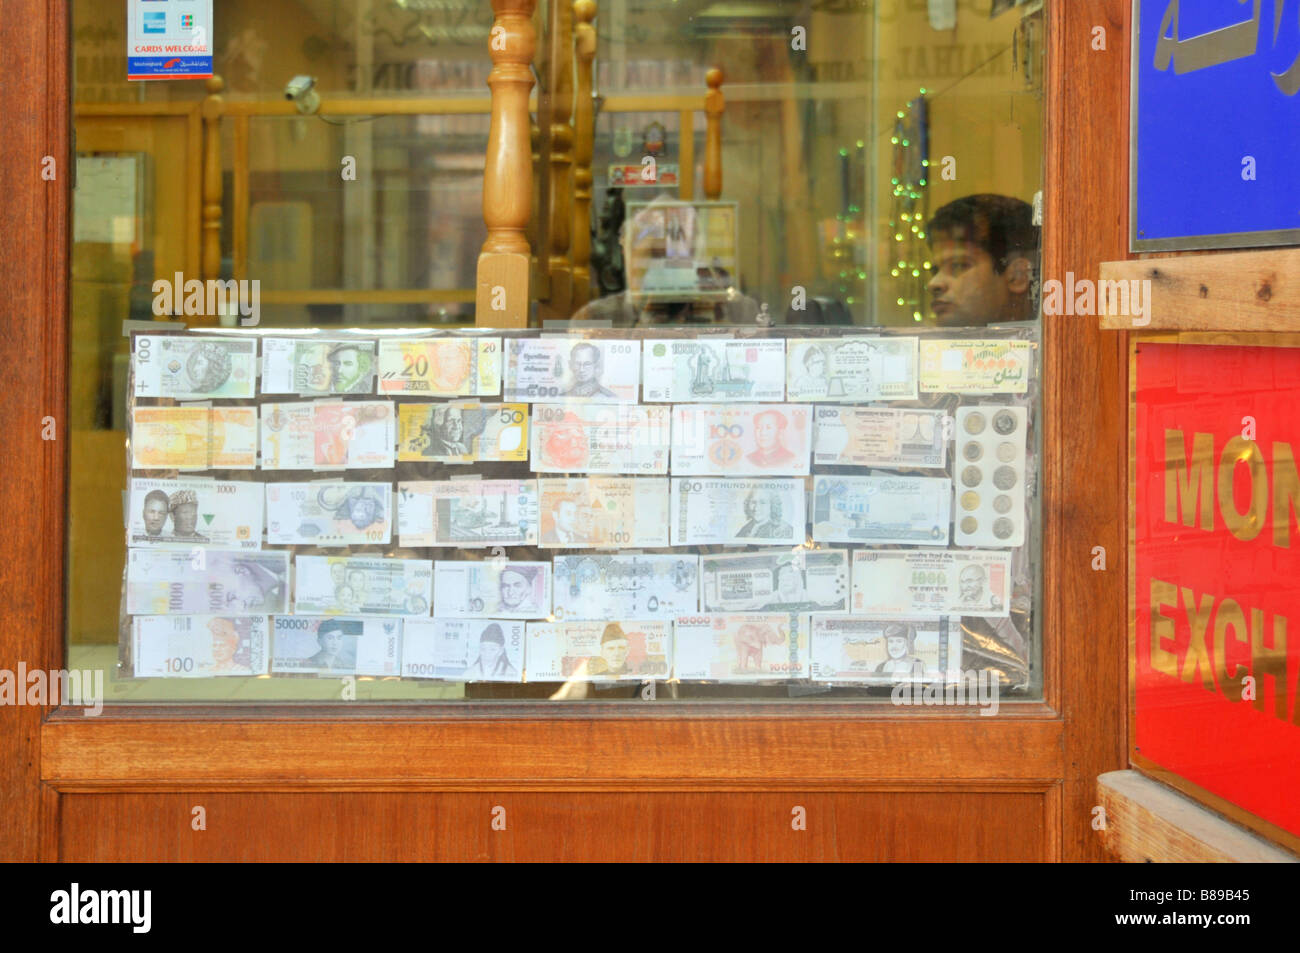 Dubai money exchange shop within the 'Dubai Old Souk' open air market United Arab Emirates Asia - Stock Image